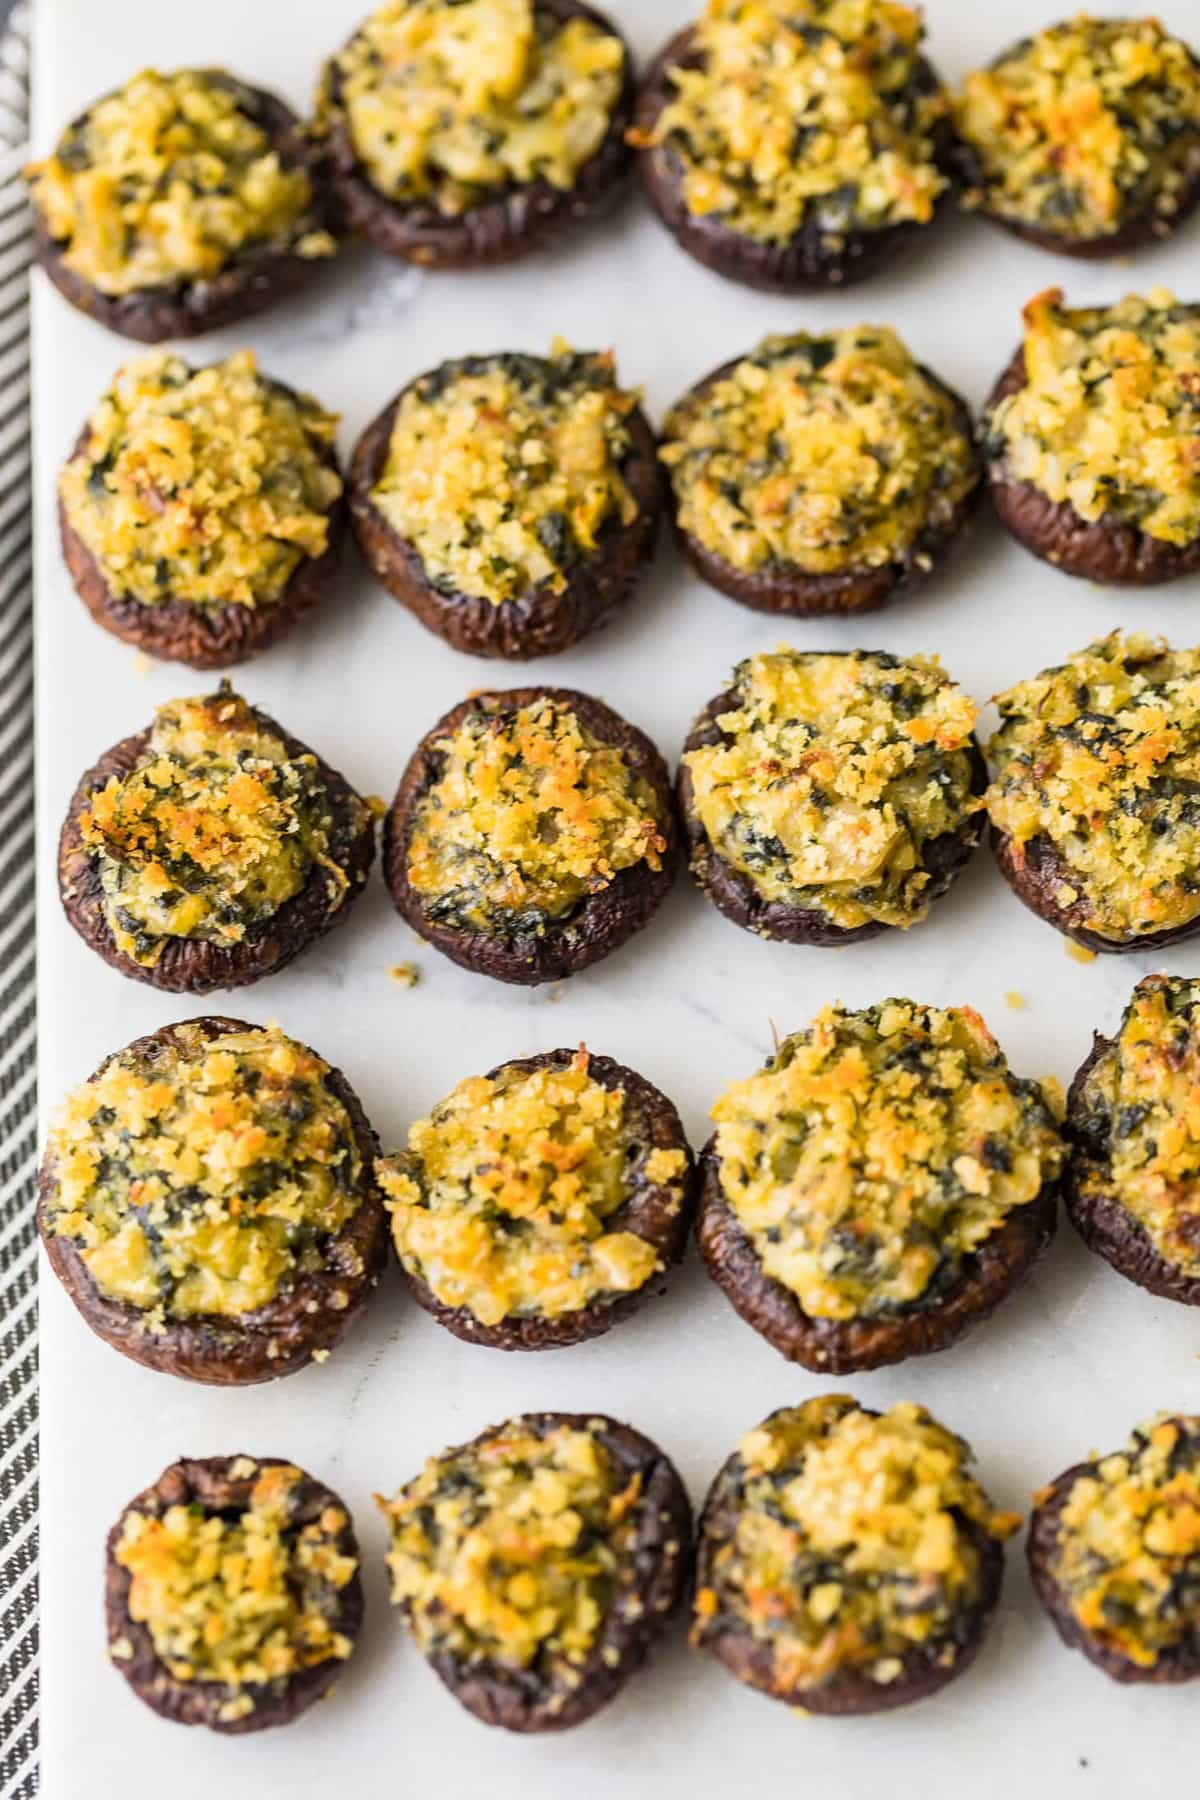 Spinach Stuffed Mushrooms on a white cutting board